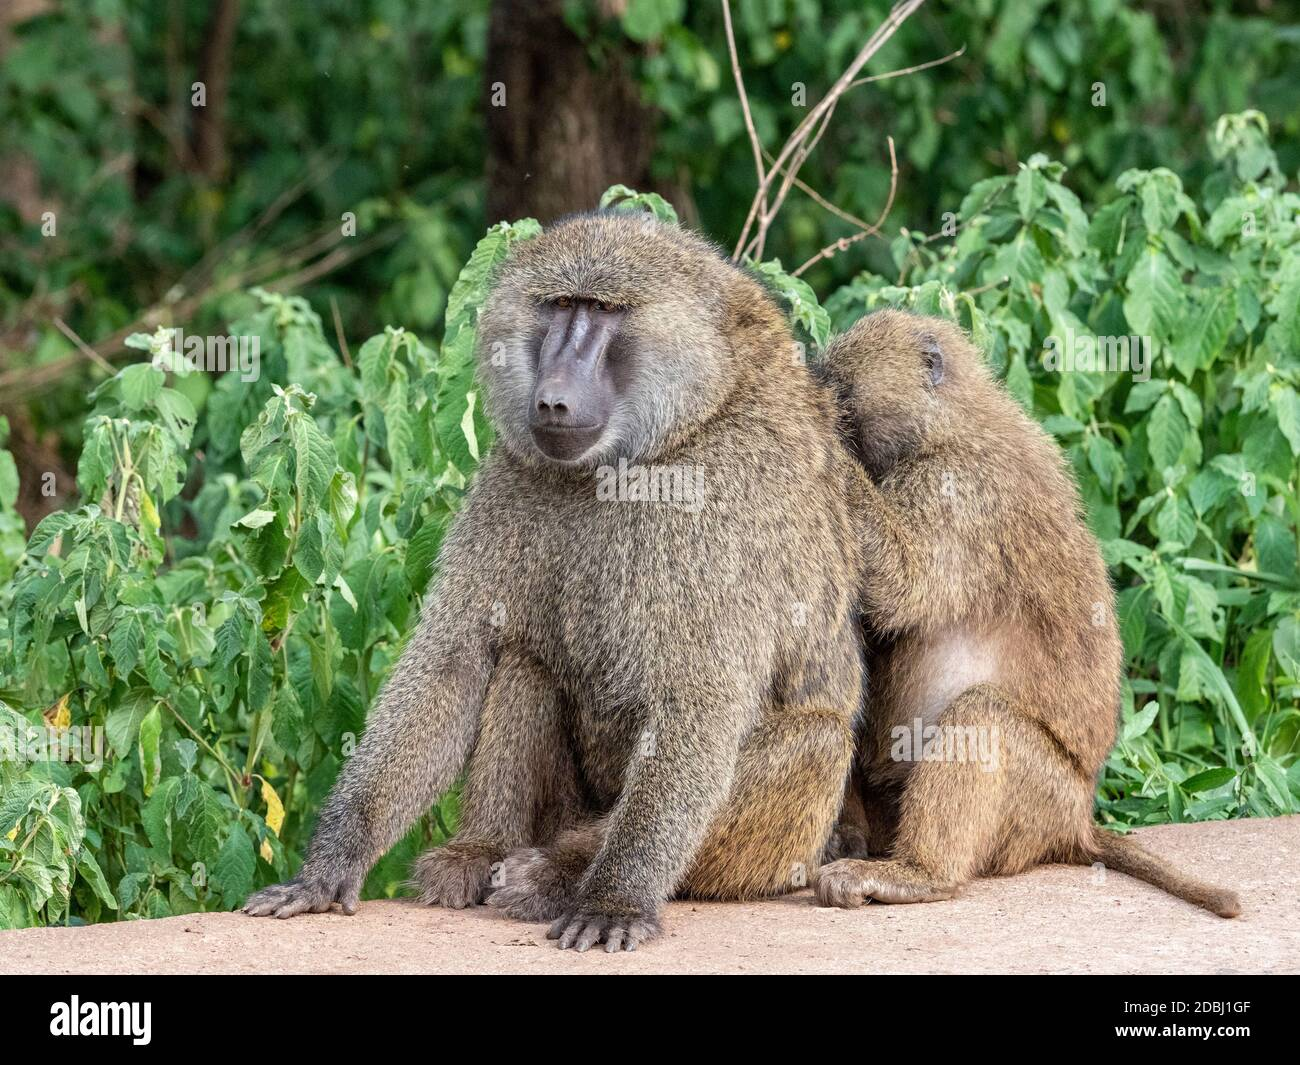 Olive baboons (Papio anubis) grooming each other in Ngorongoro Conservation Area, Tanzania, East Africa, Africa Stock Photo